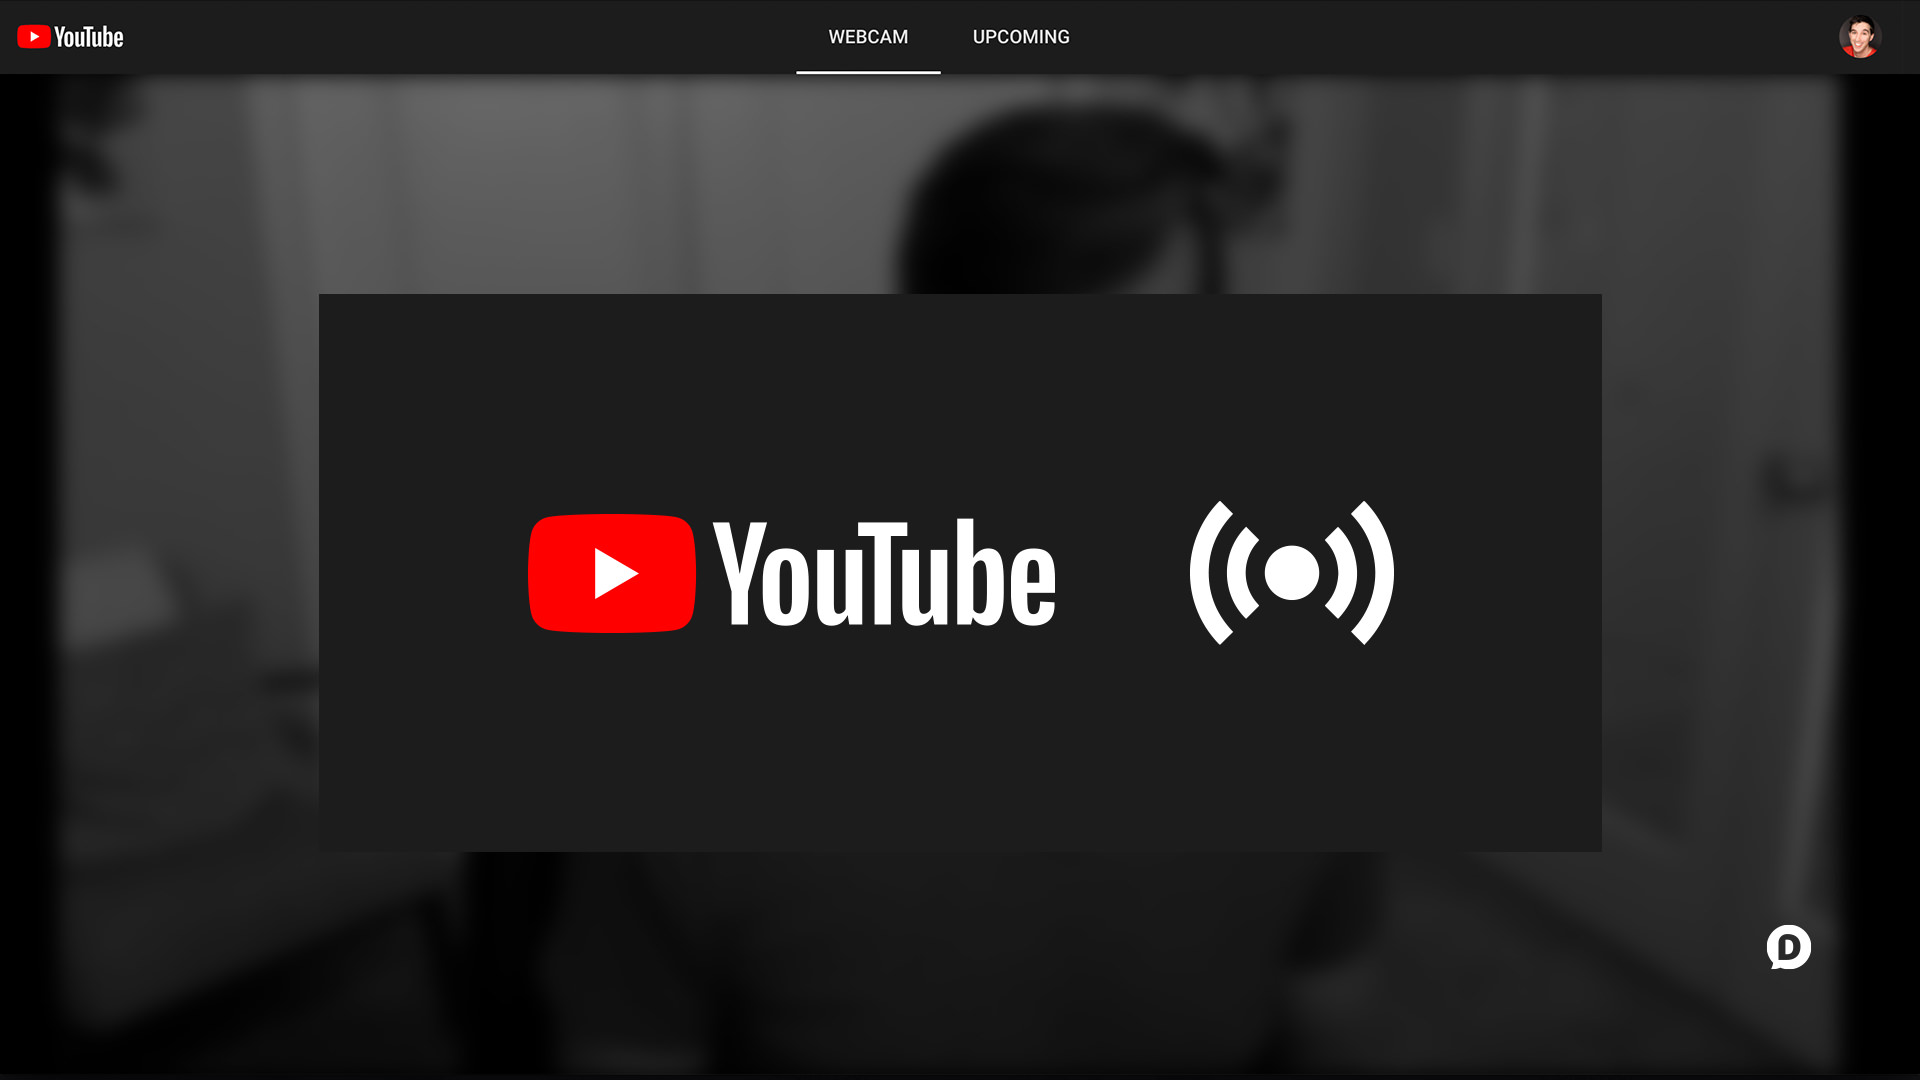 YouTube Allows Live Streaming for Channels with 1,000